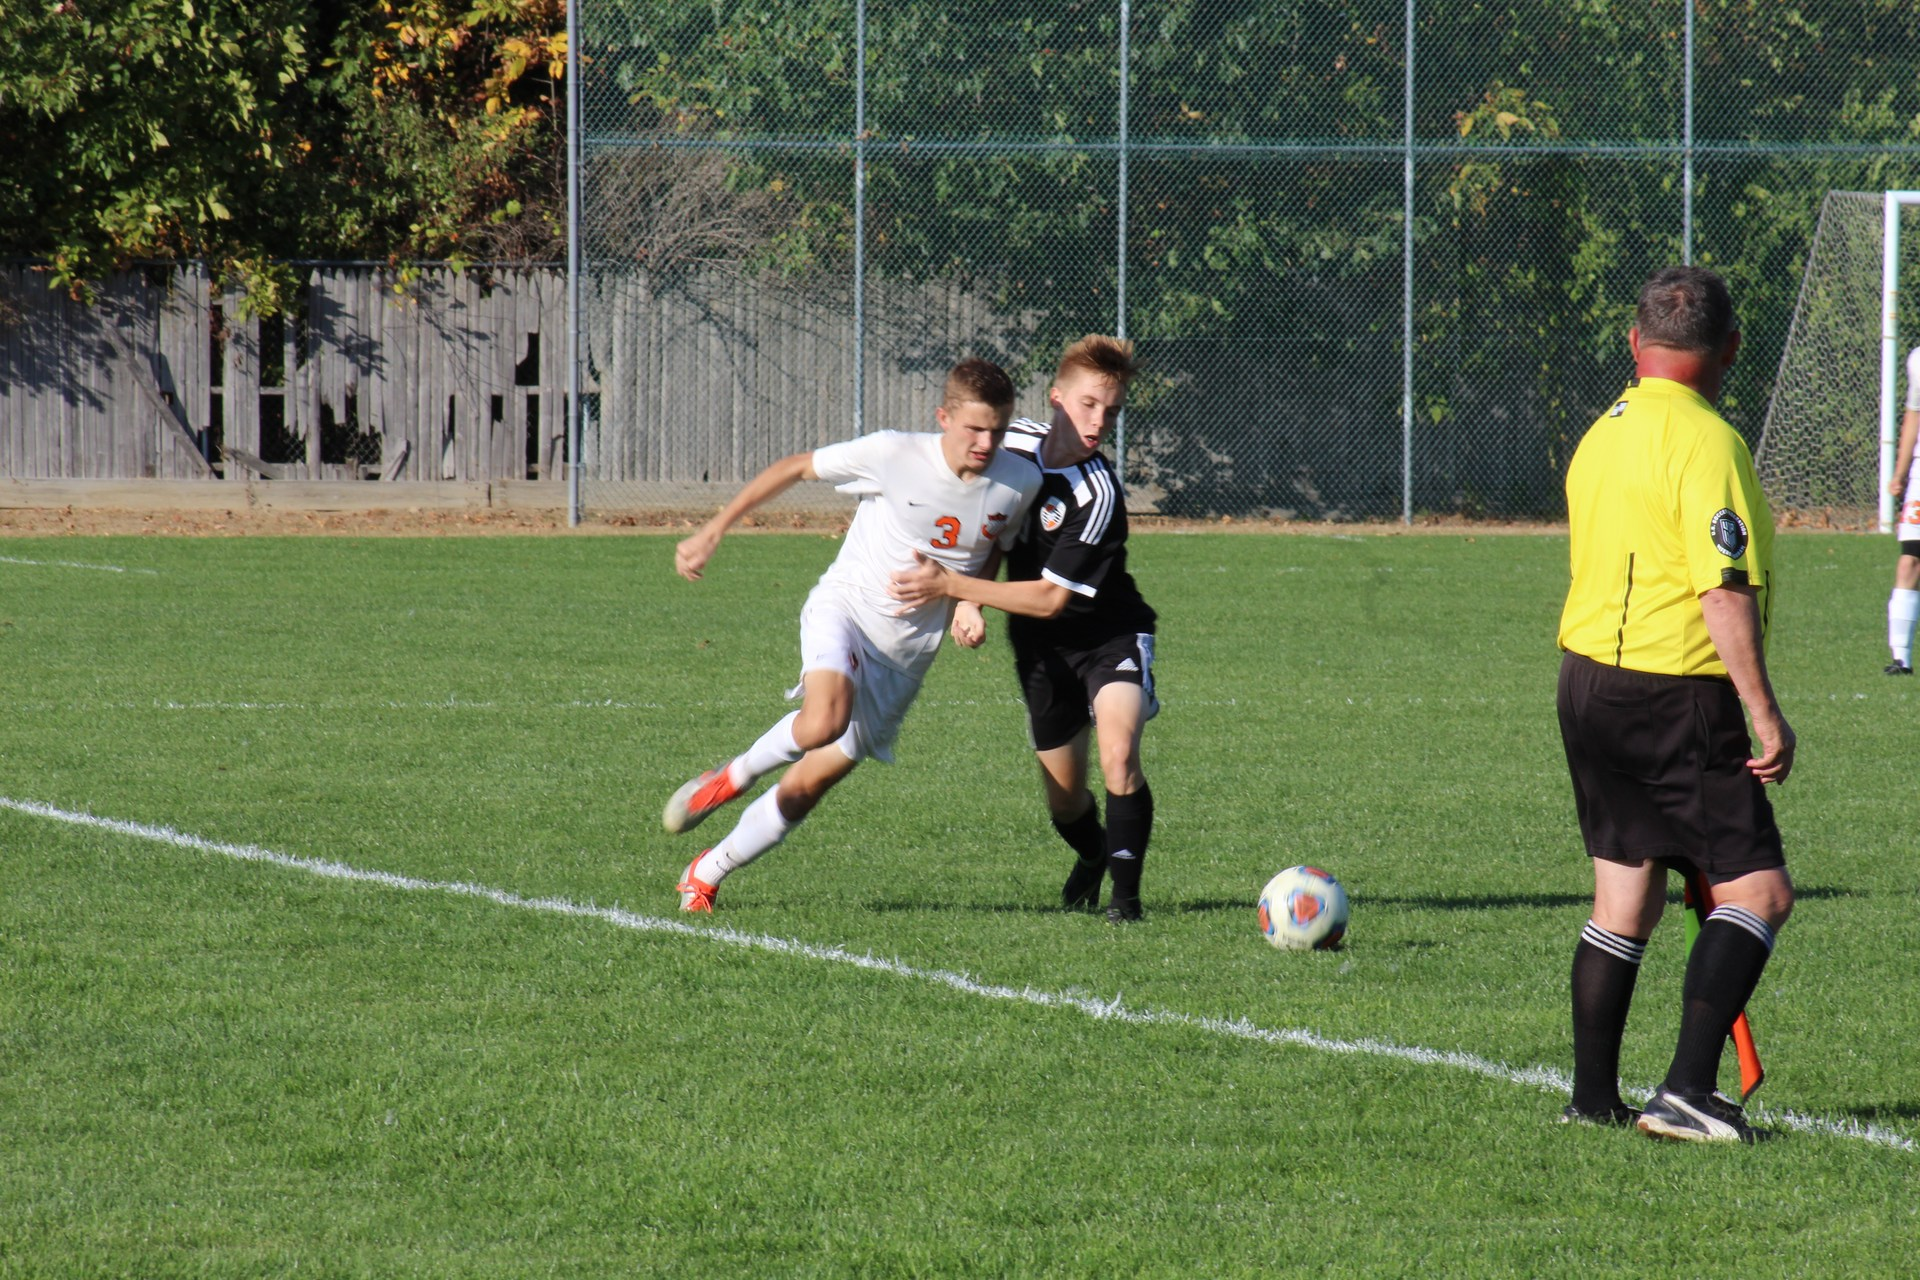 Photo of Clio and Flushing boys soccer players battling for the ball